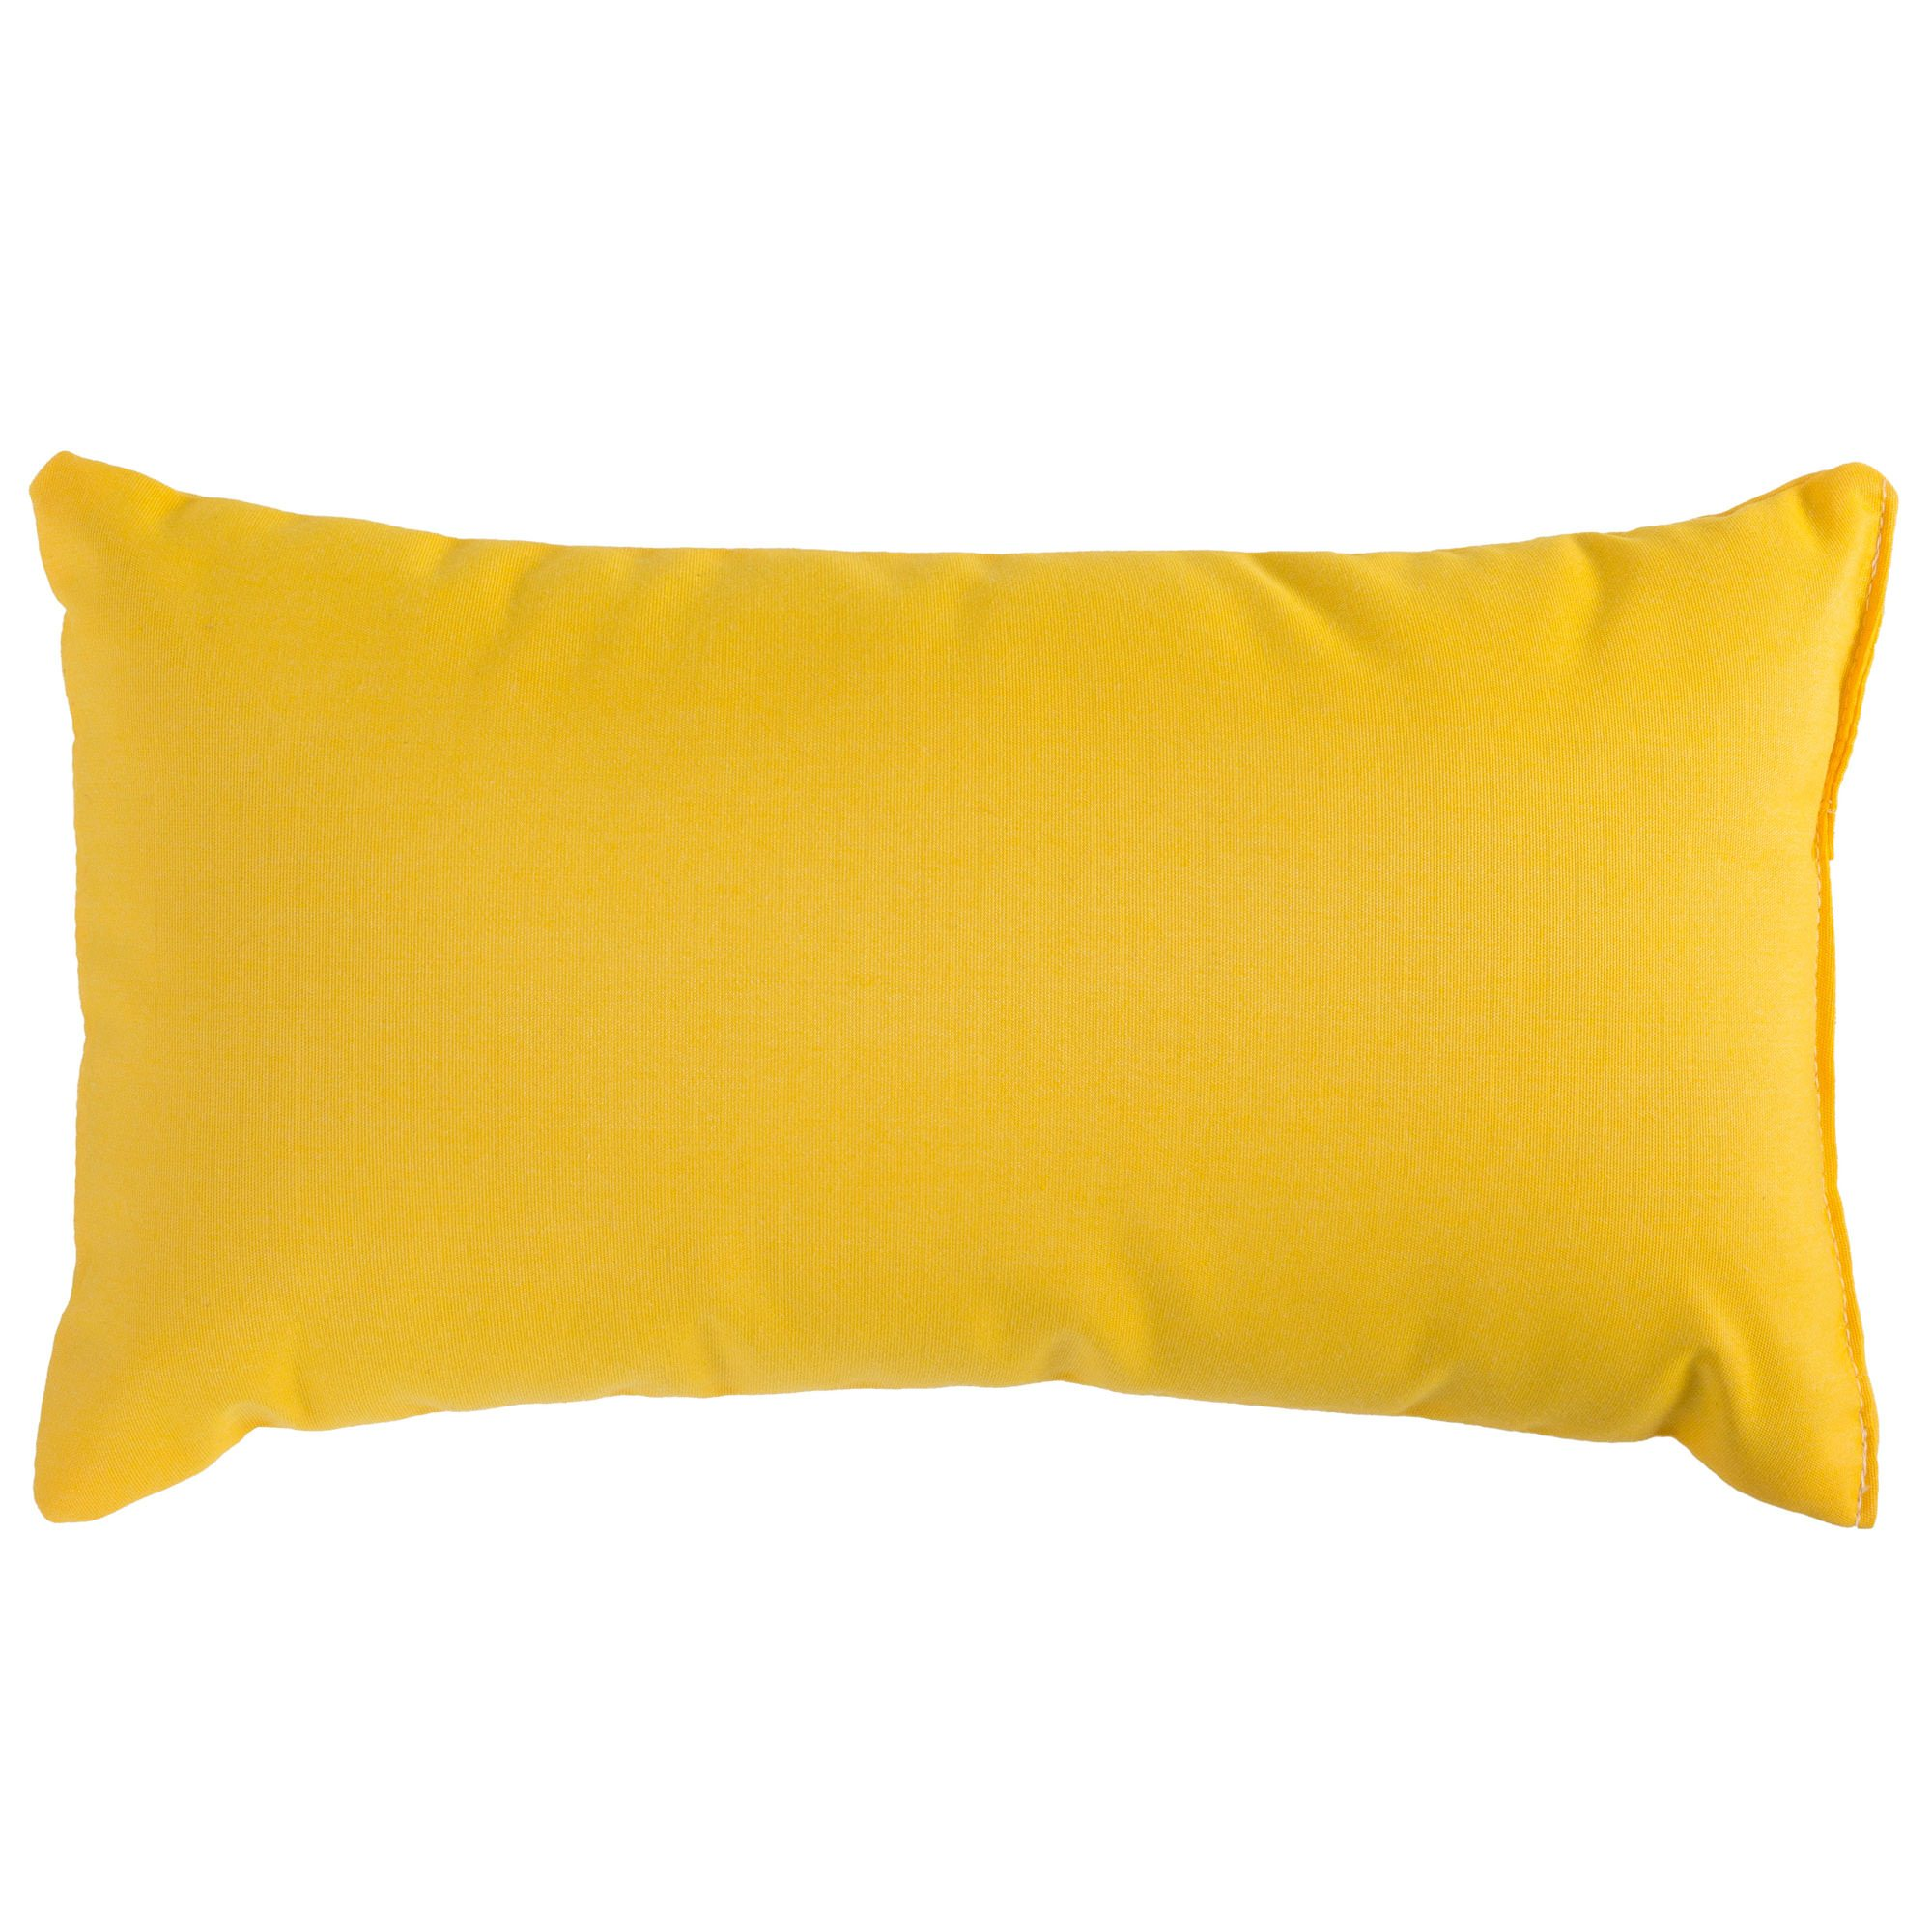 How To Make A Small Decorative Pillow : Sunflower Yellow Sunbrella Outdoor Throw Pillow DFOHome